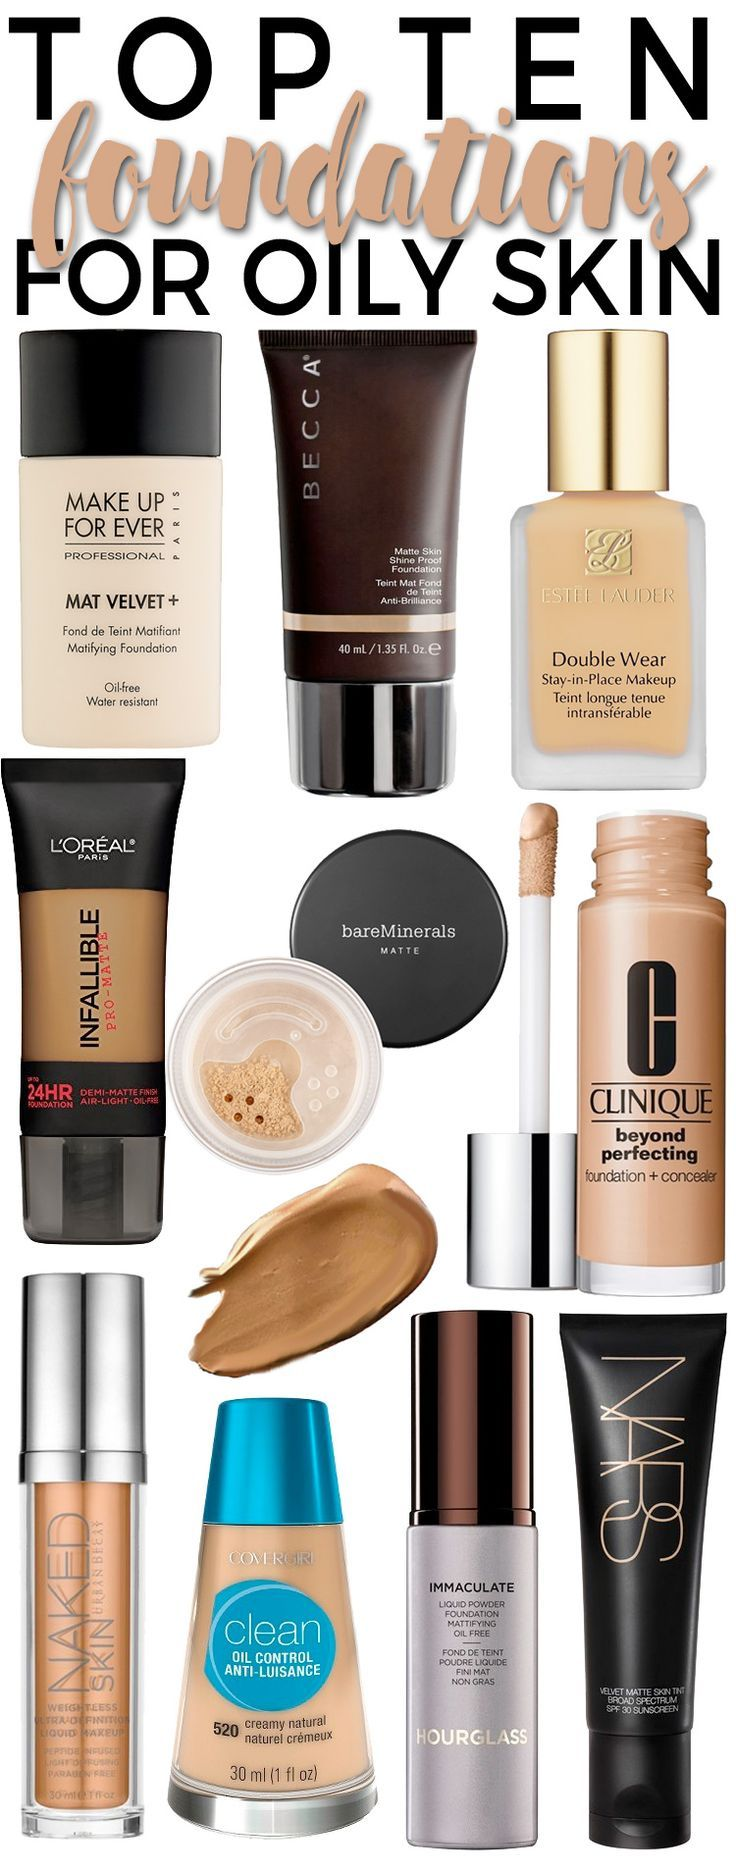 Top 10 Foundations for Oily Skin. Pinterest: /tugbabulut98/ Where you can stalk me, Instagram: tugba_bulut Beauty & Personal Care : http://amzn.to/2irNRWU